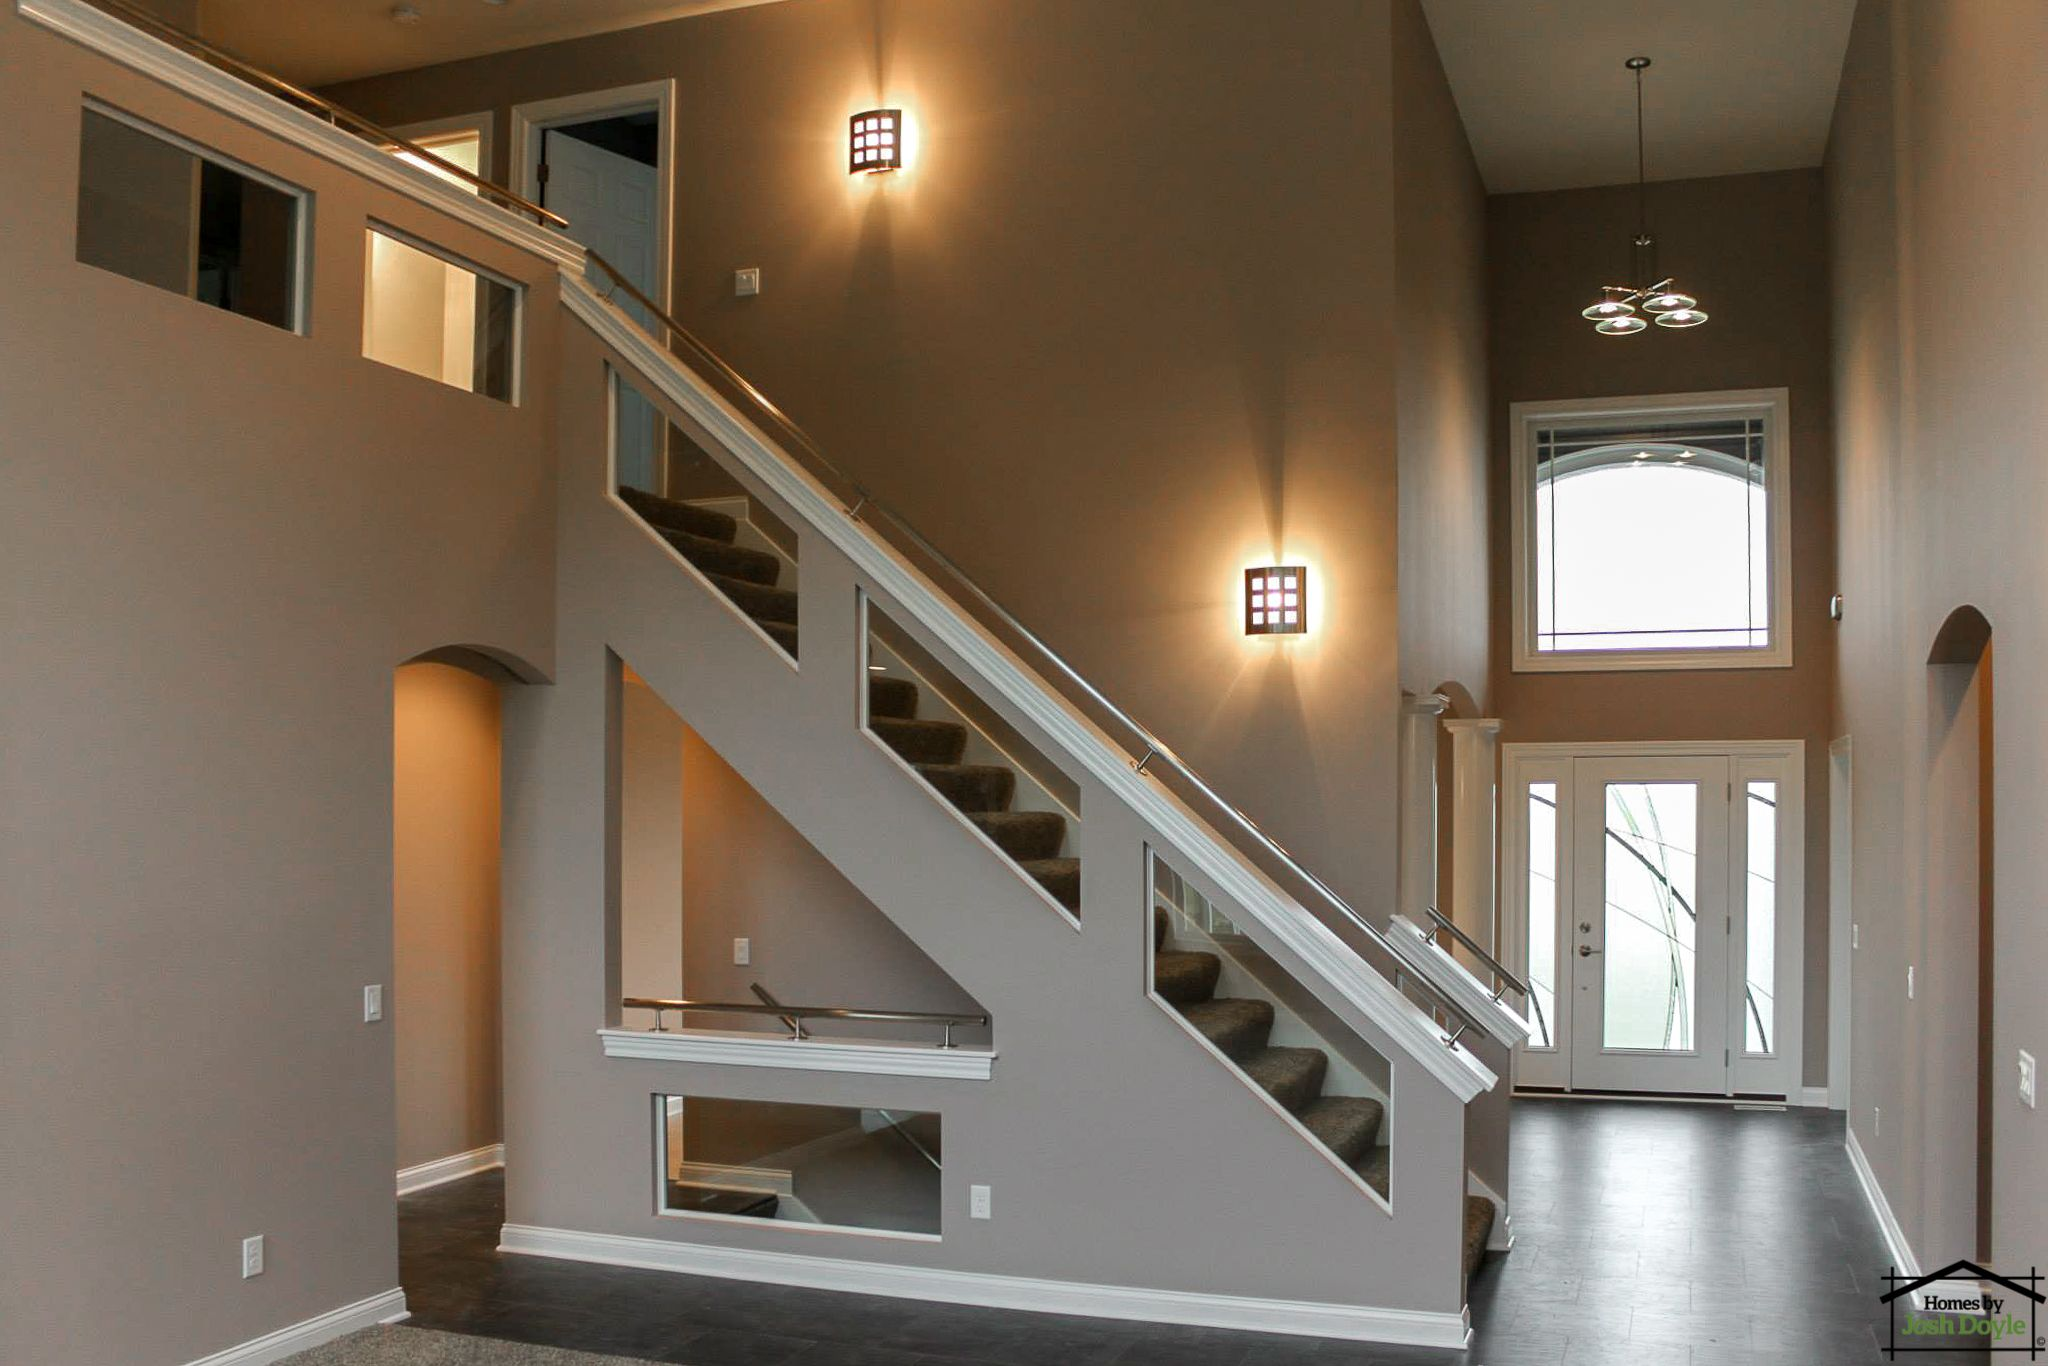 Custom Half Wall Staircase With Glass Inserts Custom Home   Half Wall Staircase Design   Railing   Limited Space Small Stair   Kitchen   Closed   Contemporary